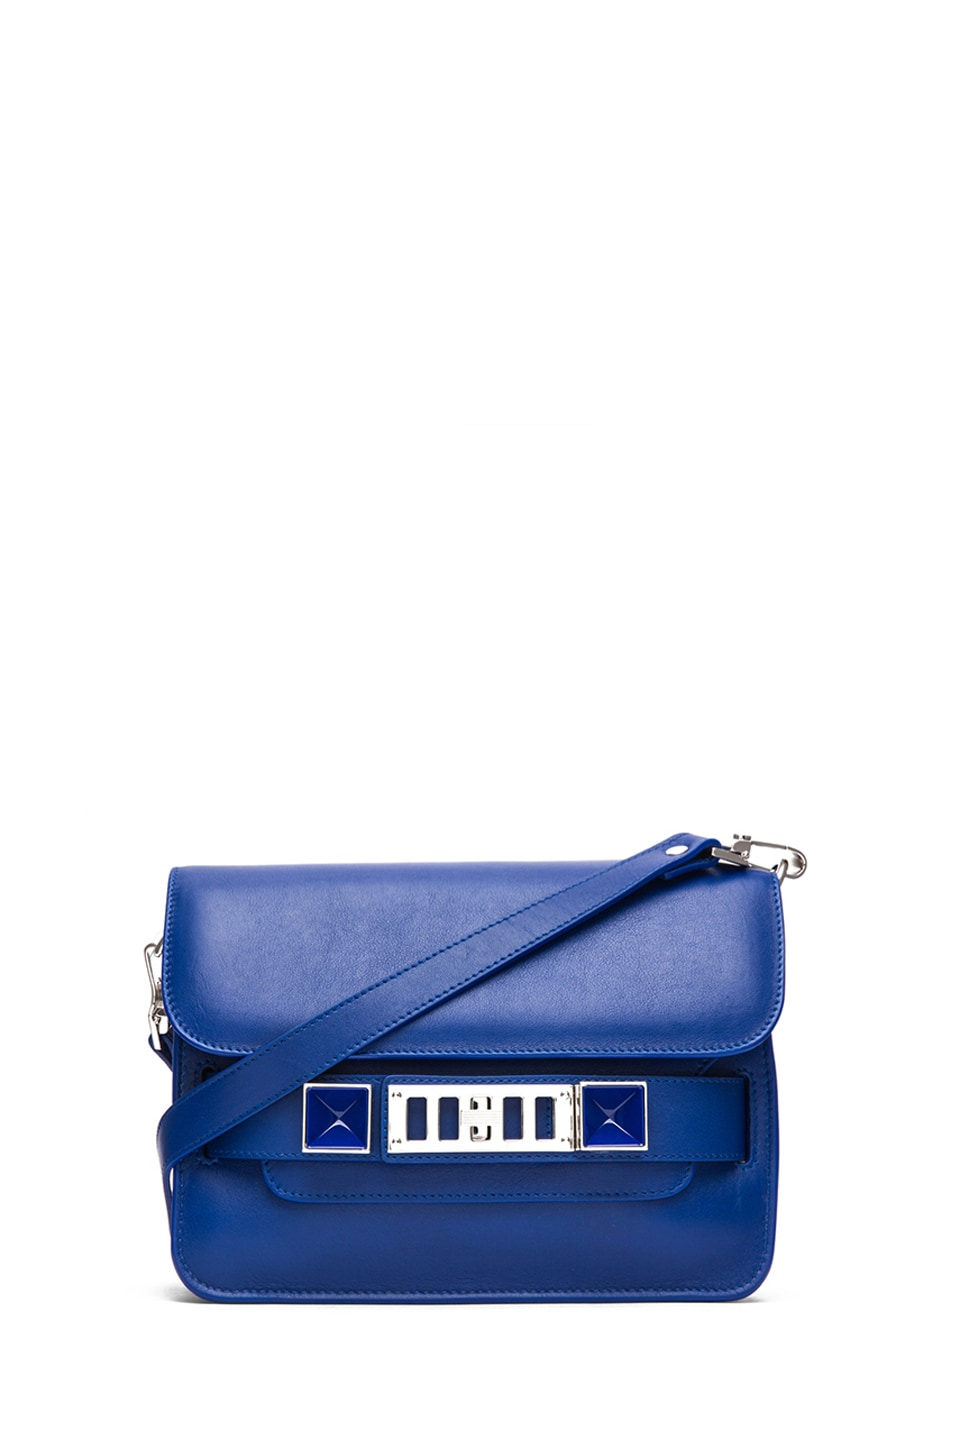 Image 1 of Proenza Schouler Mini PS11 Classic Smooth Leather Shoulder Bag in Royal Blue